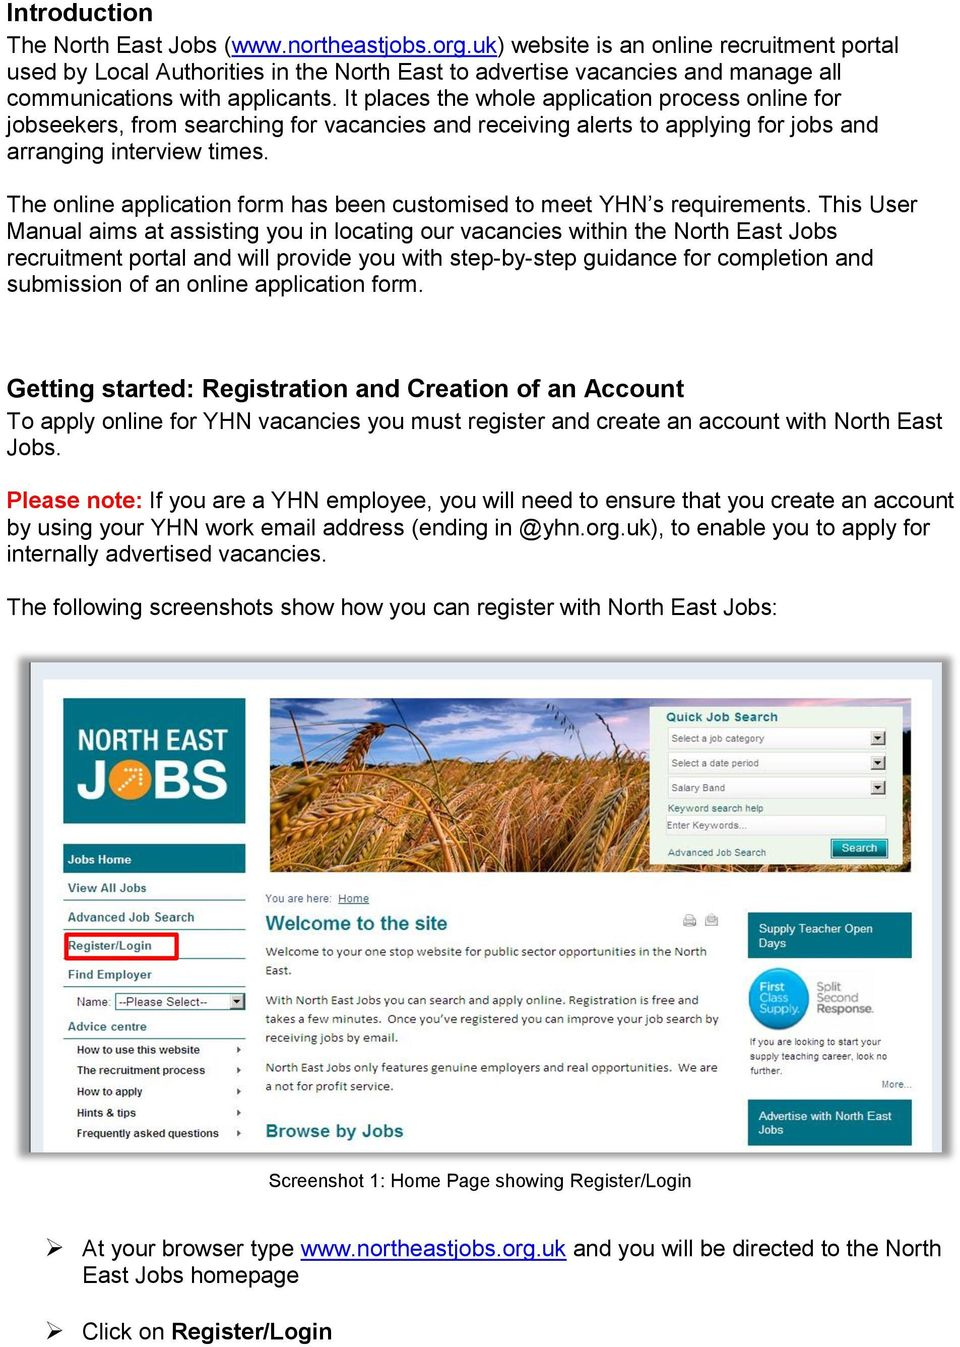 It places the whole application process online for jobseekers, from searching for vacancies and receiving alerts to applying for jobs and arranging interview times.